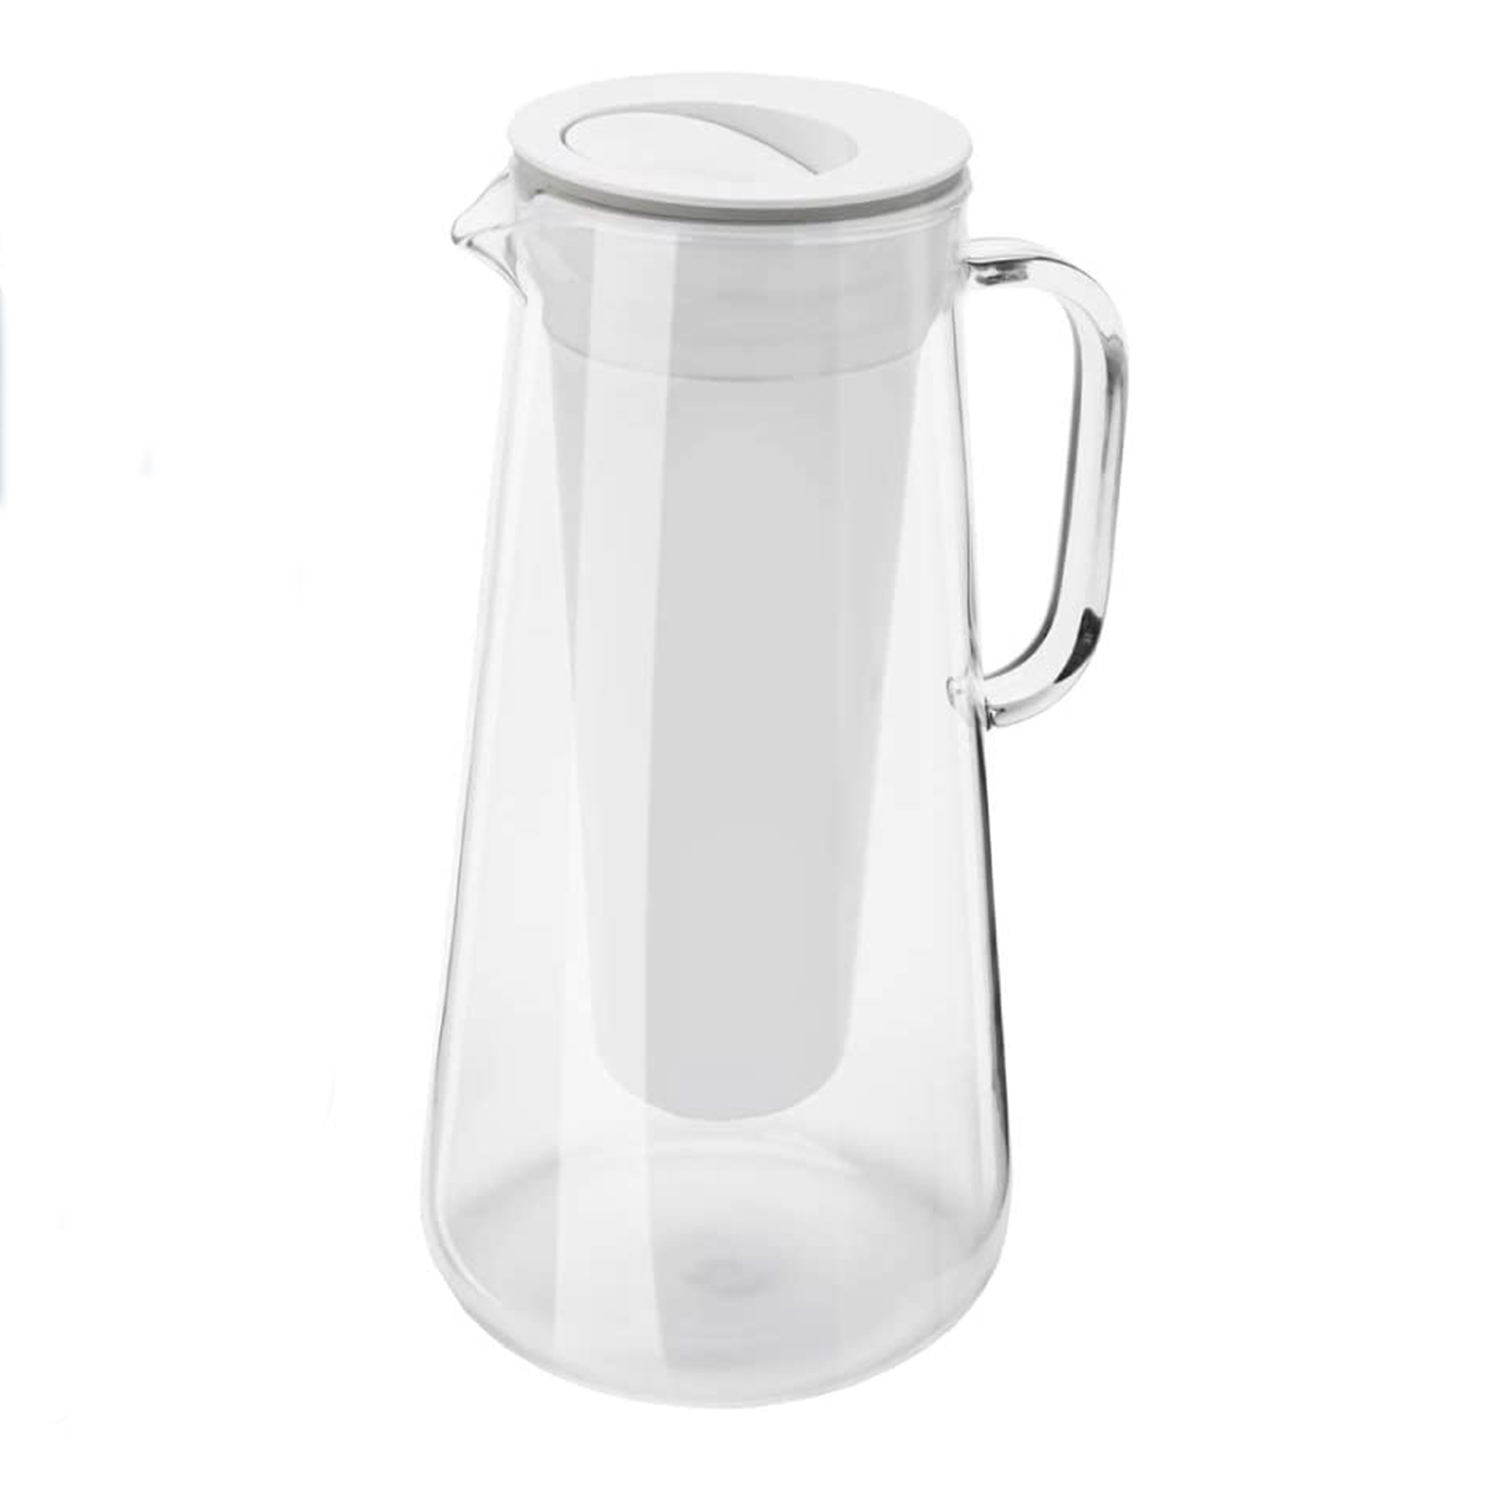 LifeStraw Home Water Filter Pitcher Tested to Protect Against Bacteria